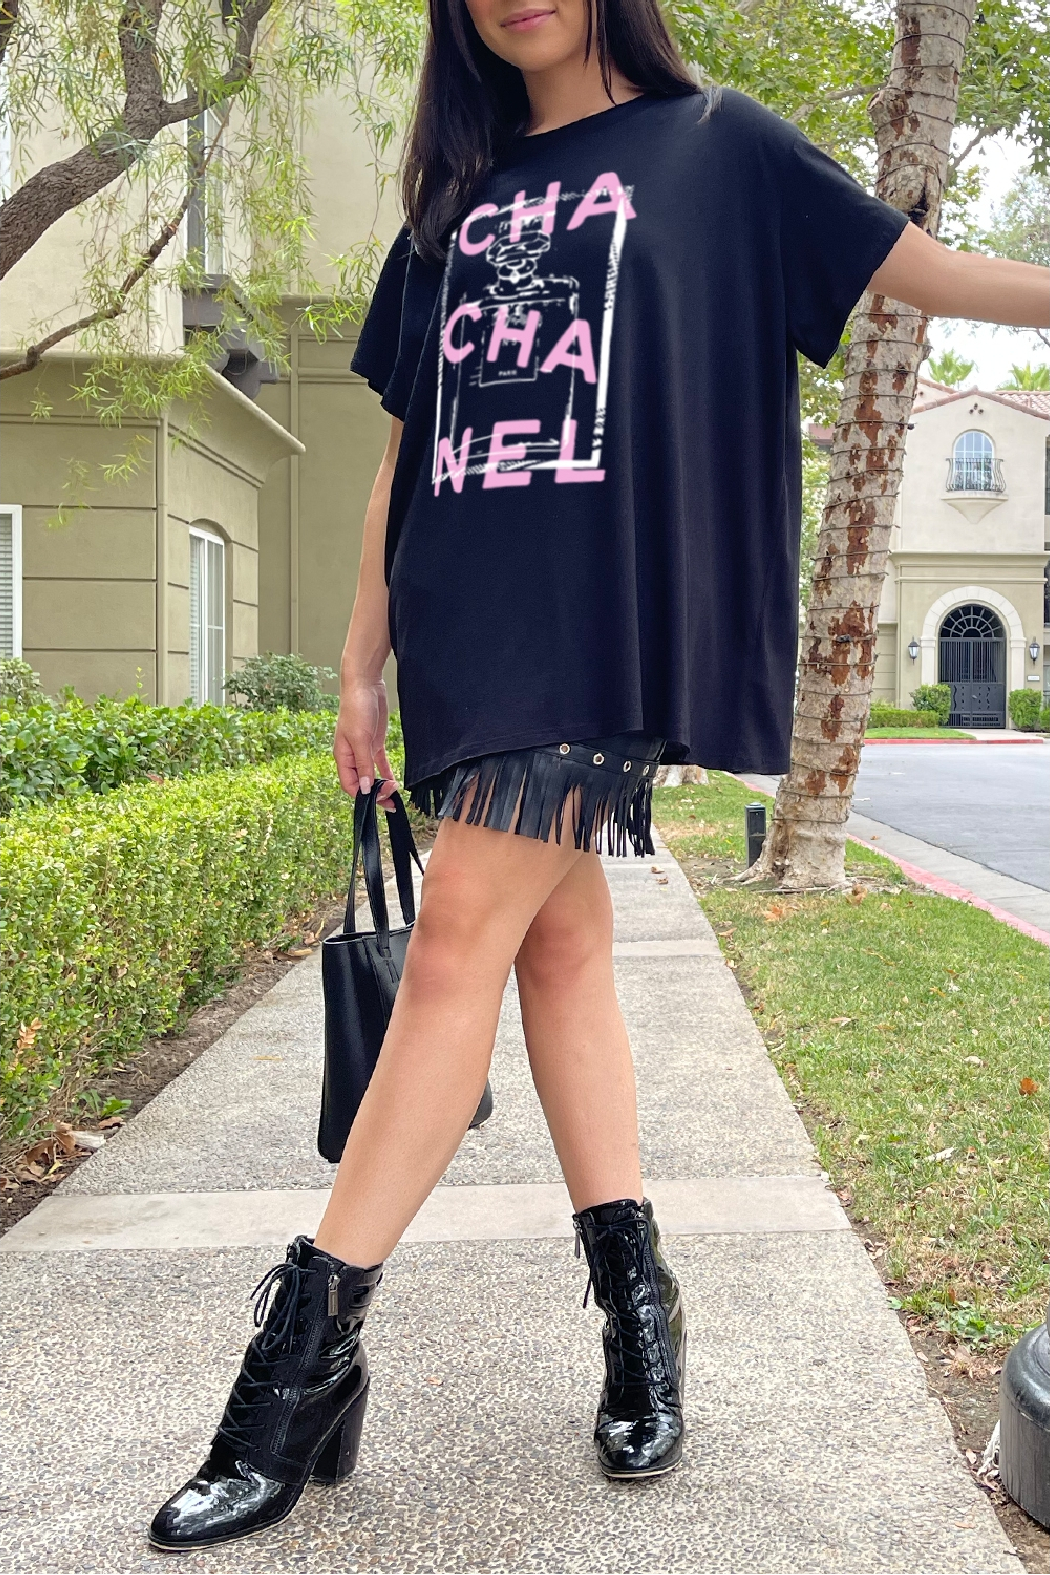 LA Trading Co Cha Cha Nel Graphic Tee - Side Cropped Image